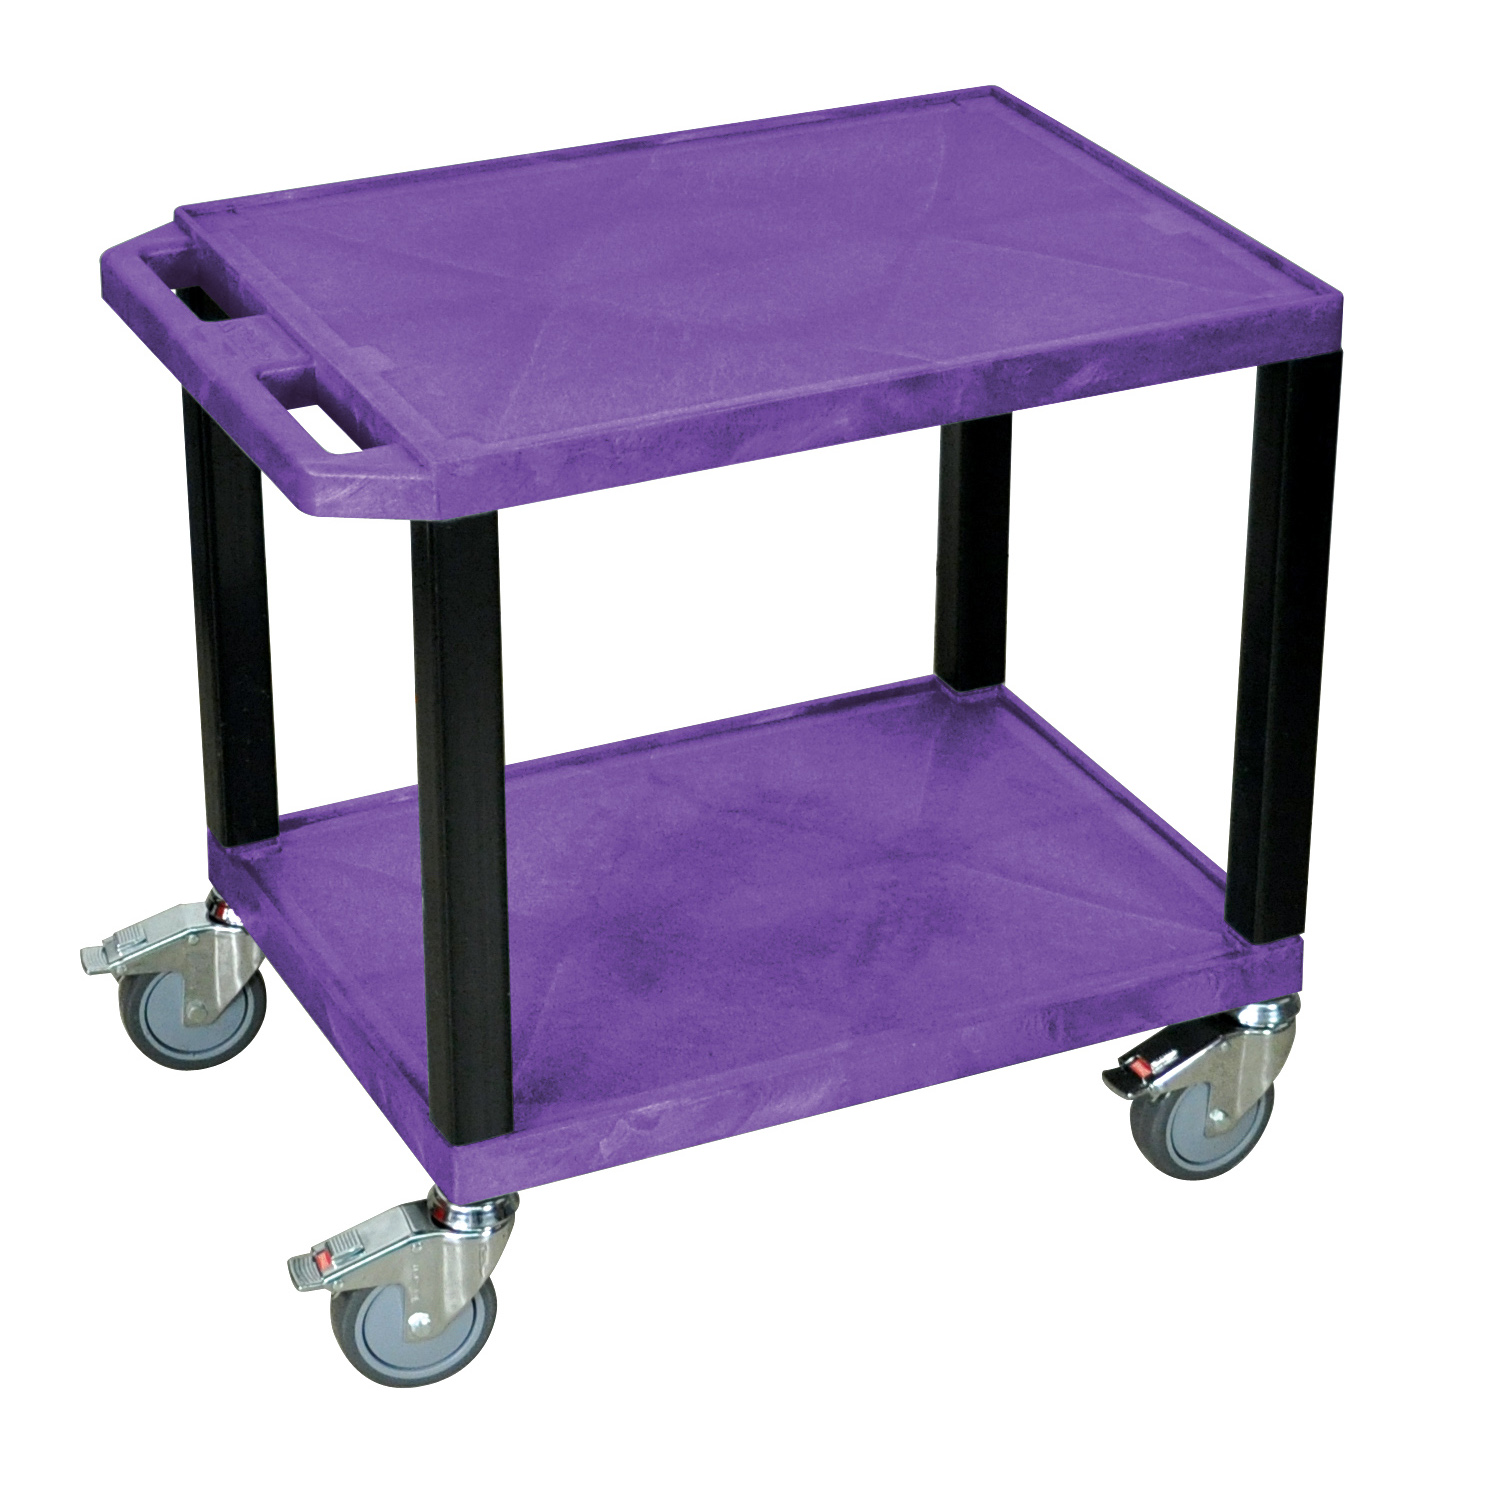 H. Wilson Tuffy Movable Multipurpose Home Office AV Presentation Utility Cart With Chrome Casters Purple and Black at Sears.com